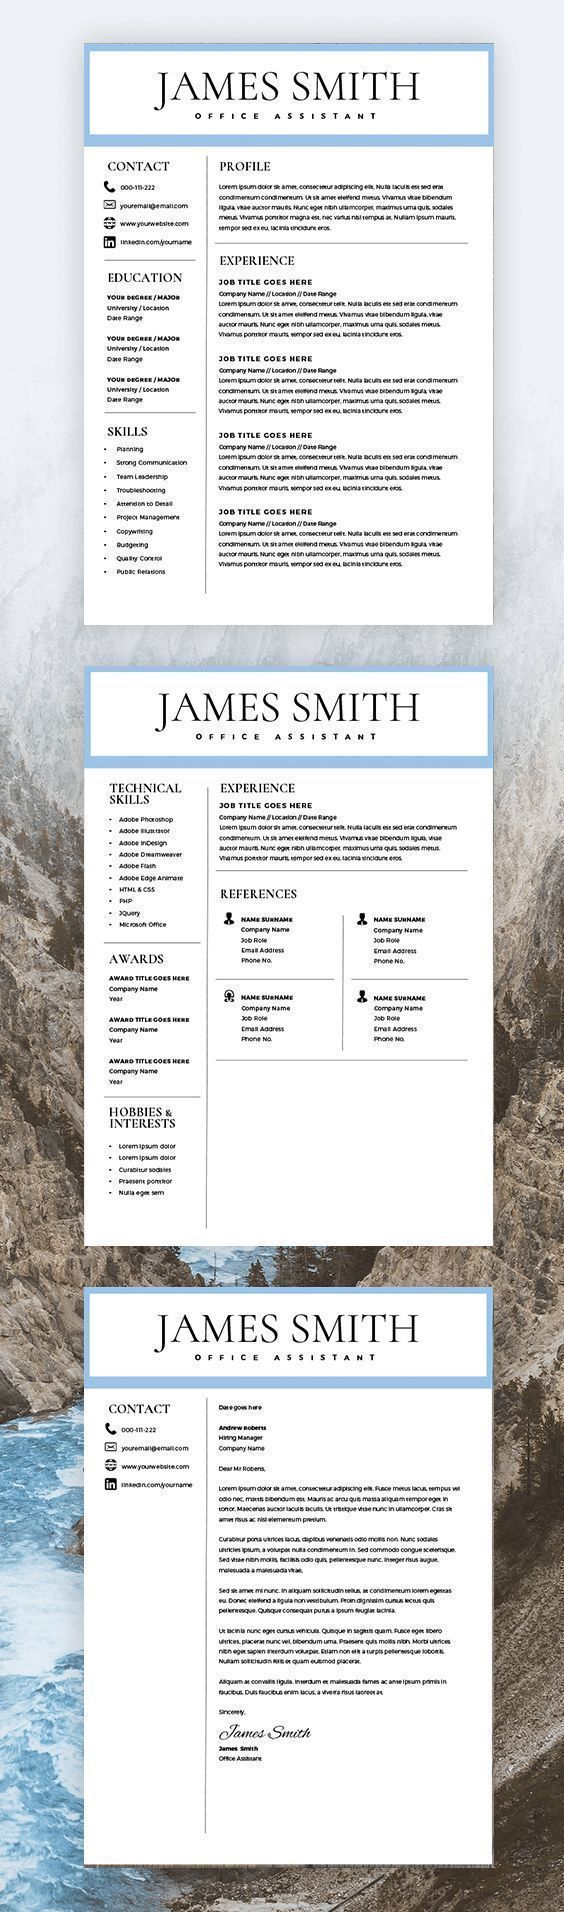 Resume Template for Men Writer Resume